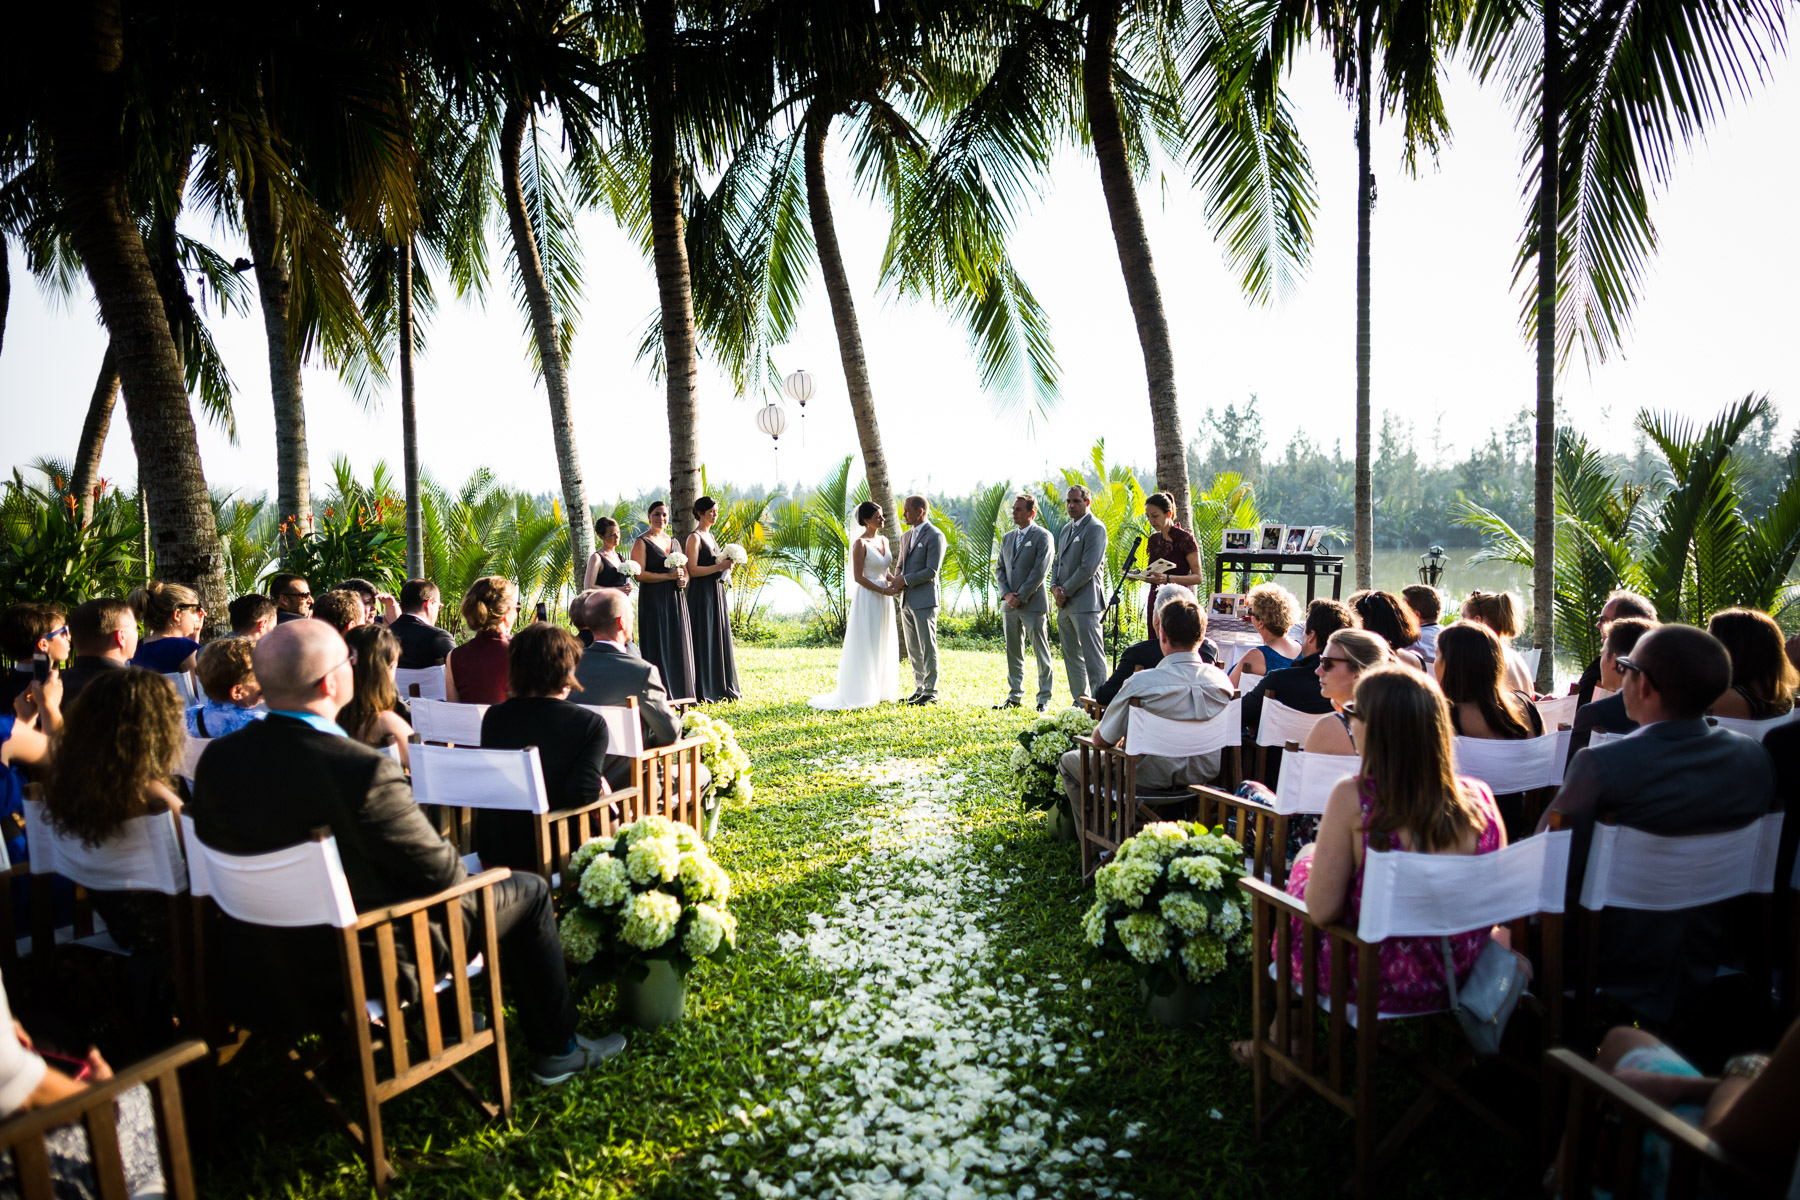 Southeast-Asia-Destination-Wedding-Photography-7